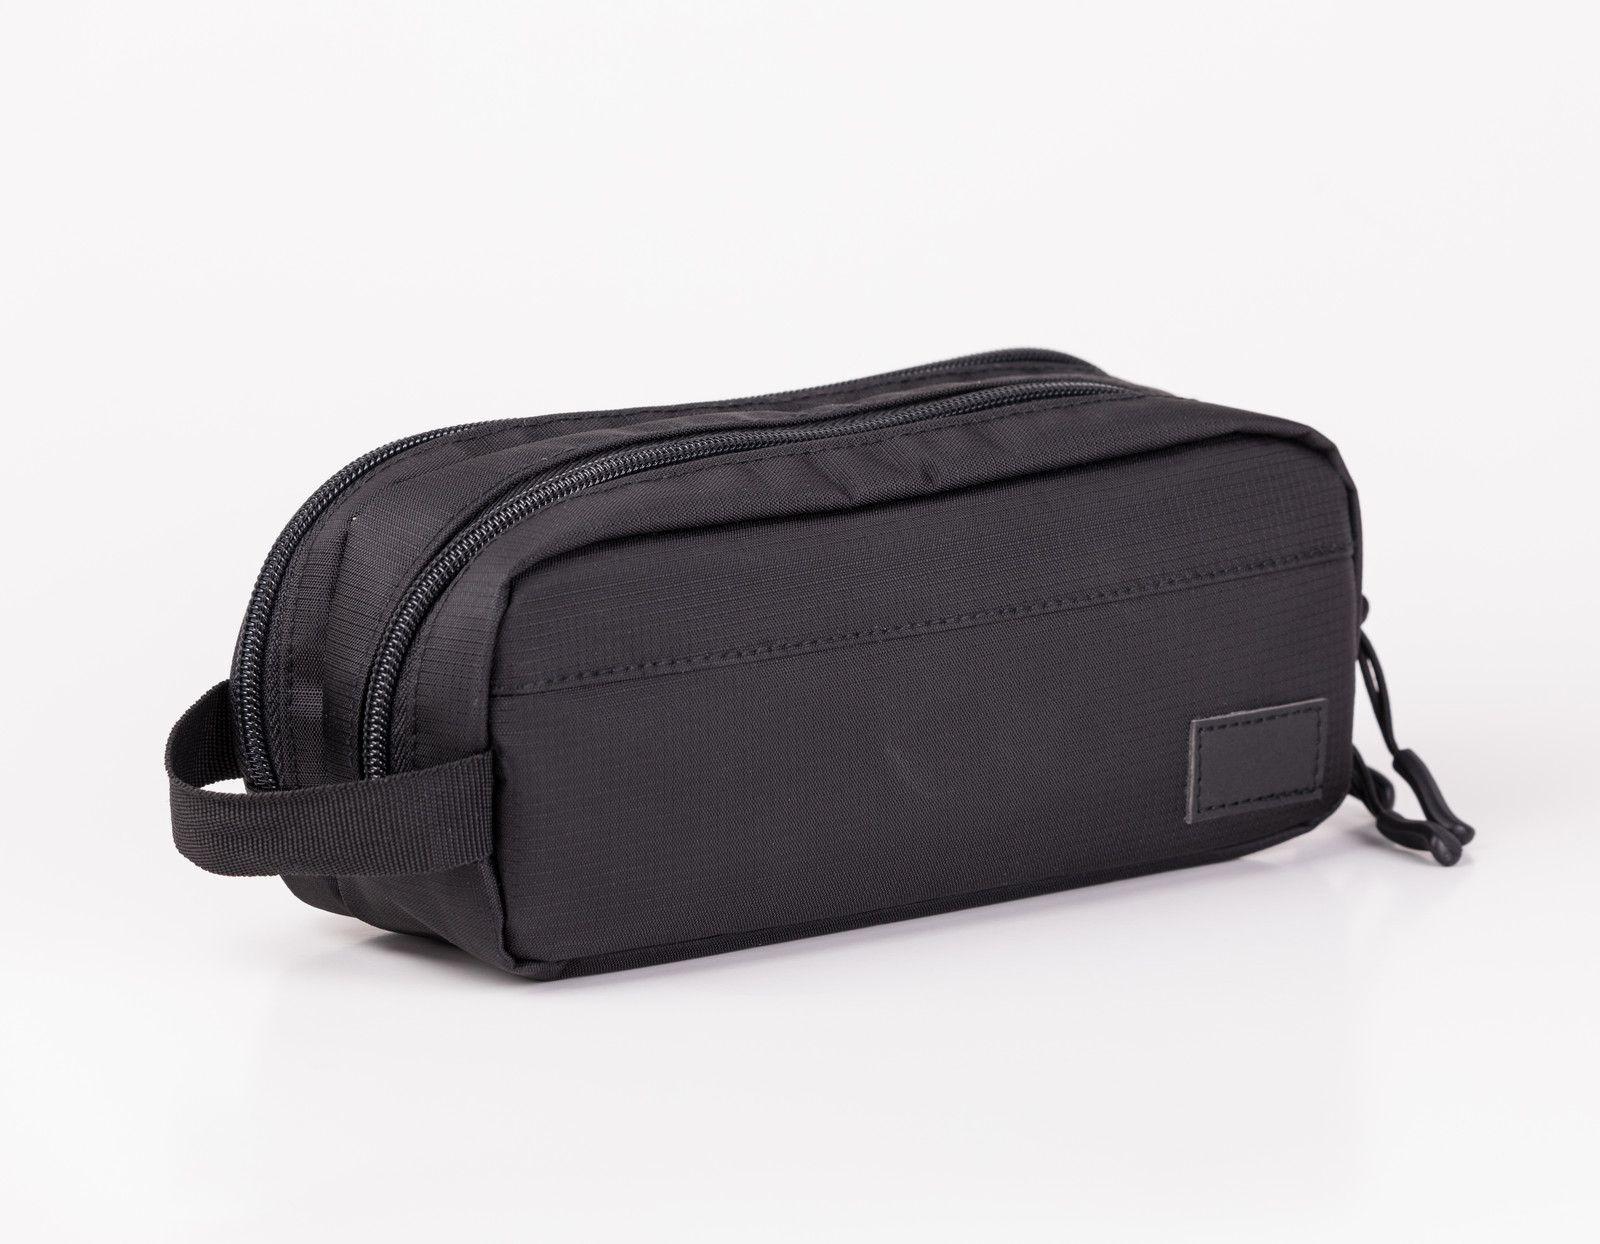 Gear Organizer Bag